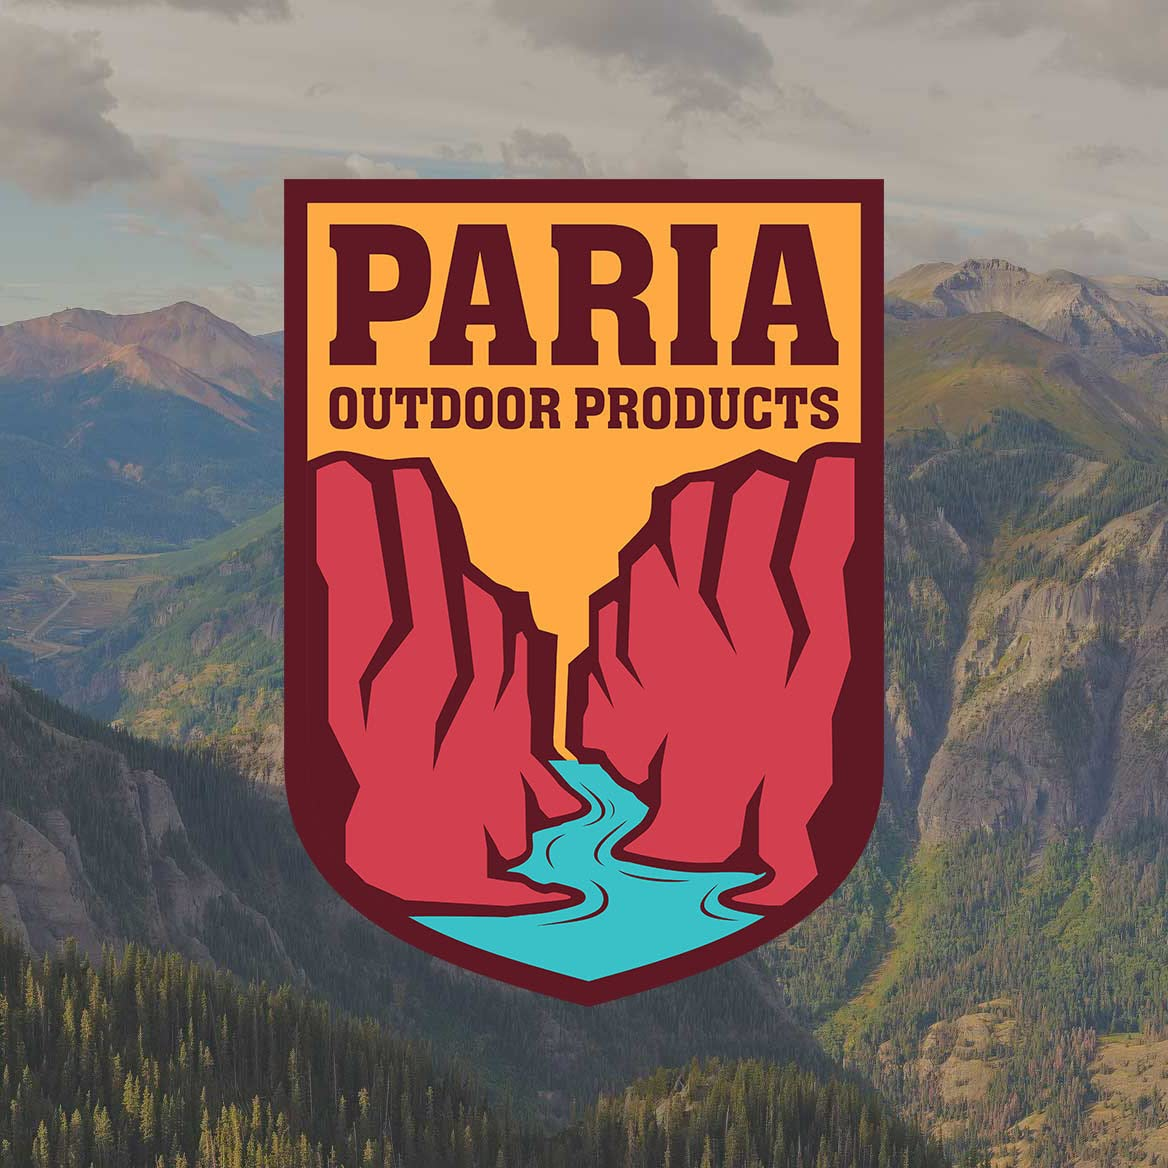 Paria Outdoor Products